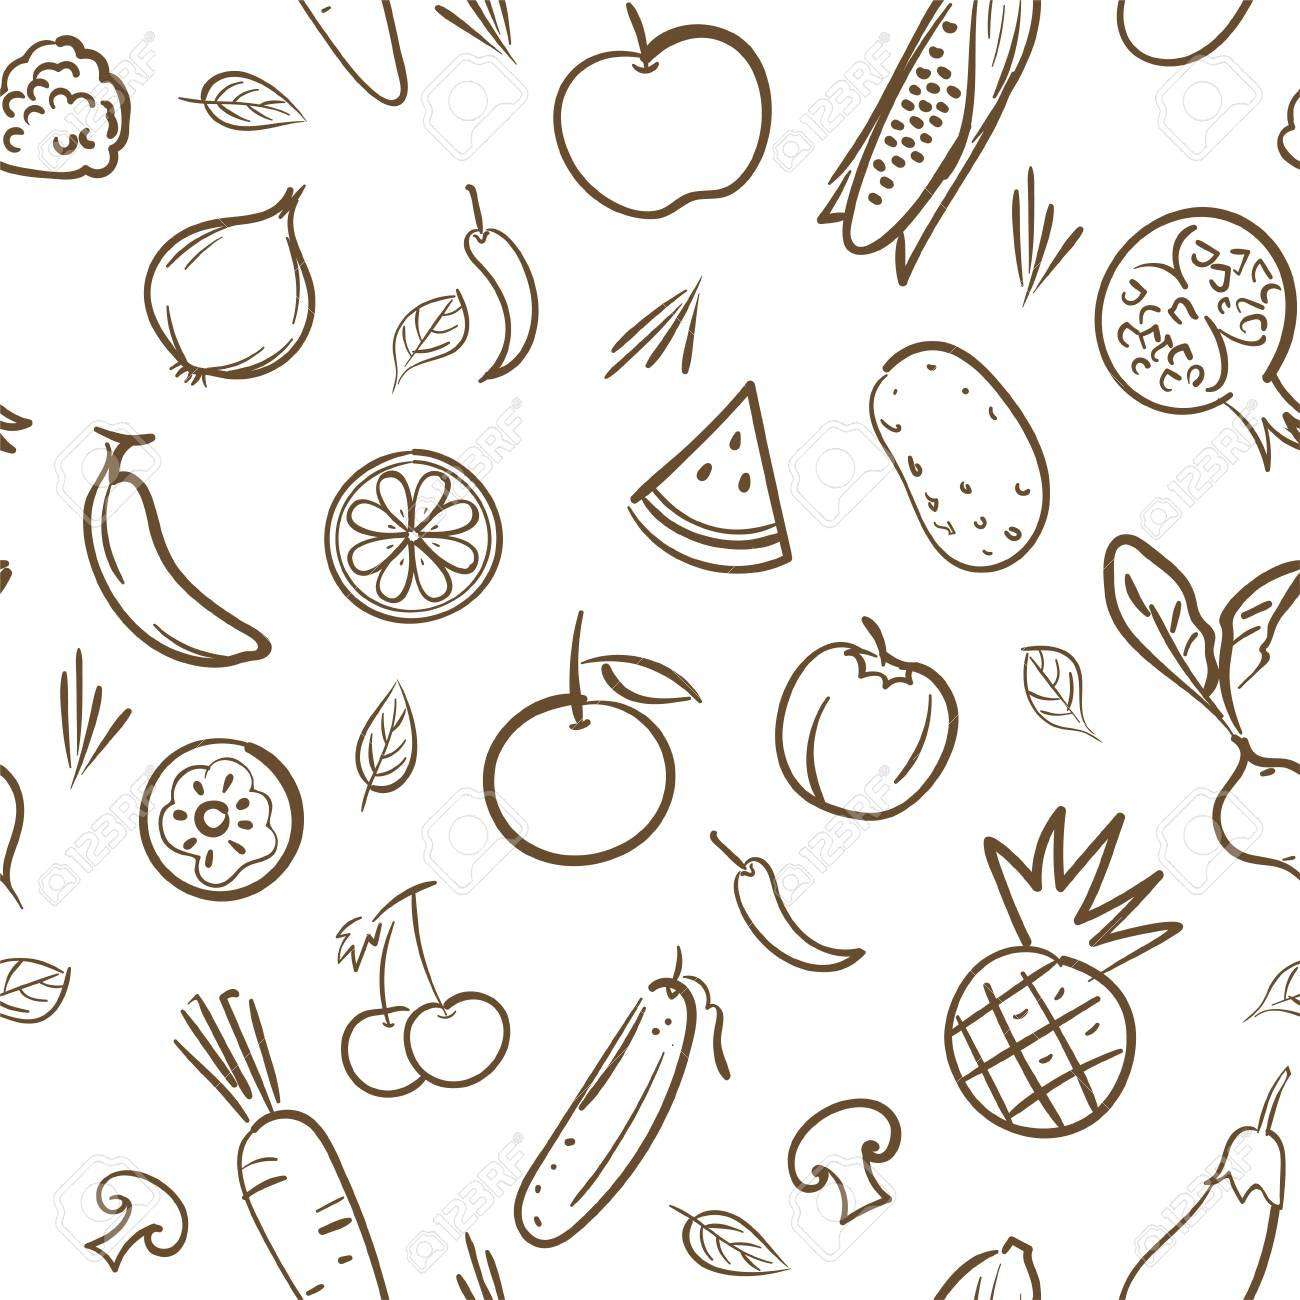 Sketch Of Cute Mix Fruits And Vegetables Seamless Pattern Background